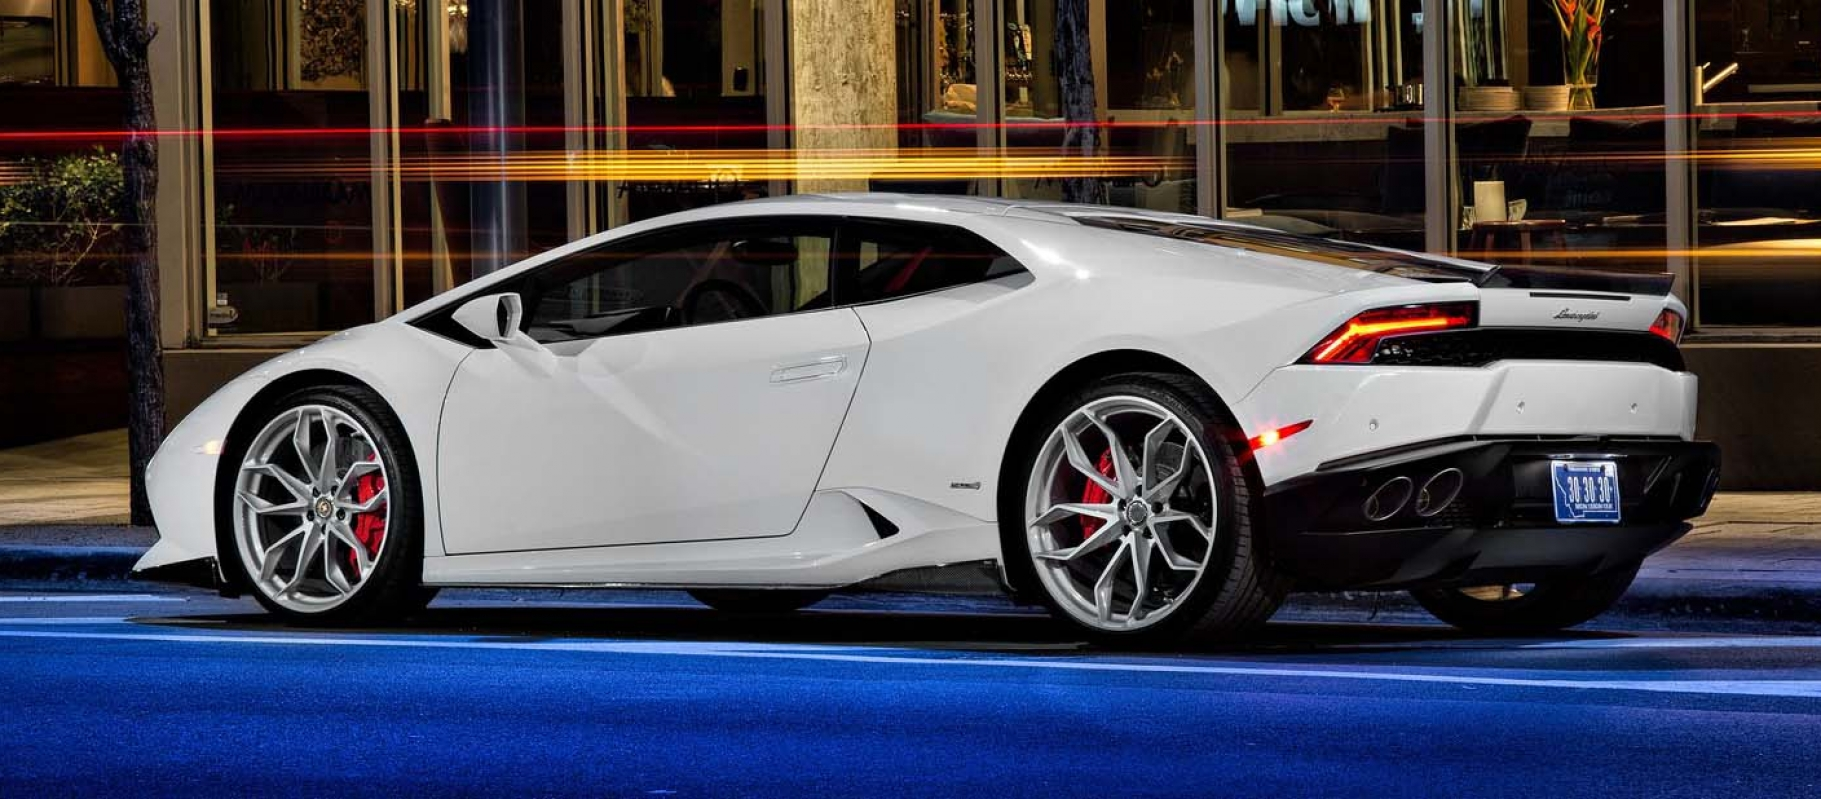 RSC Aero for Luxury Vehicles - Lamborghini Exteriors